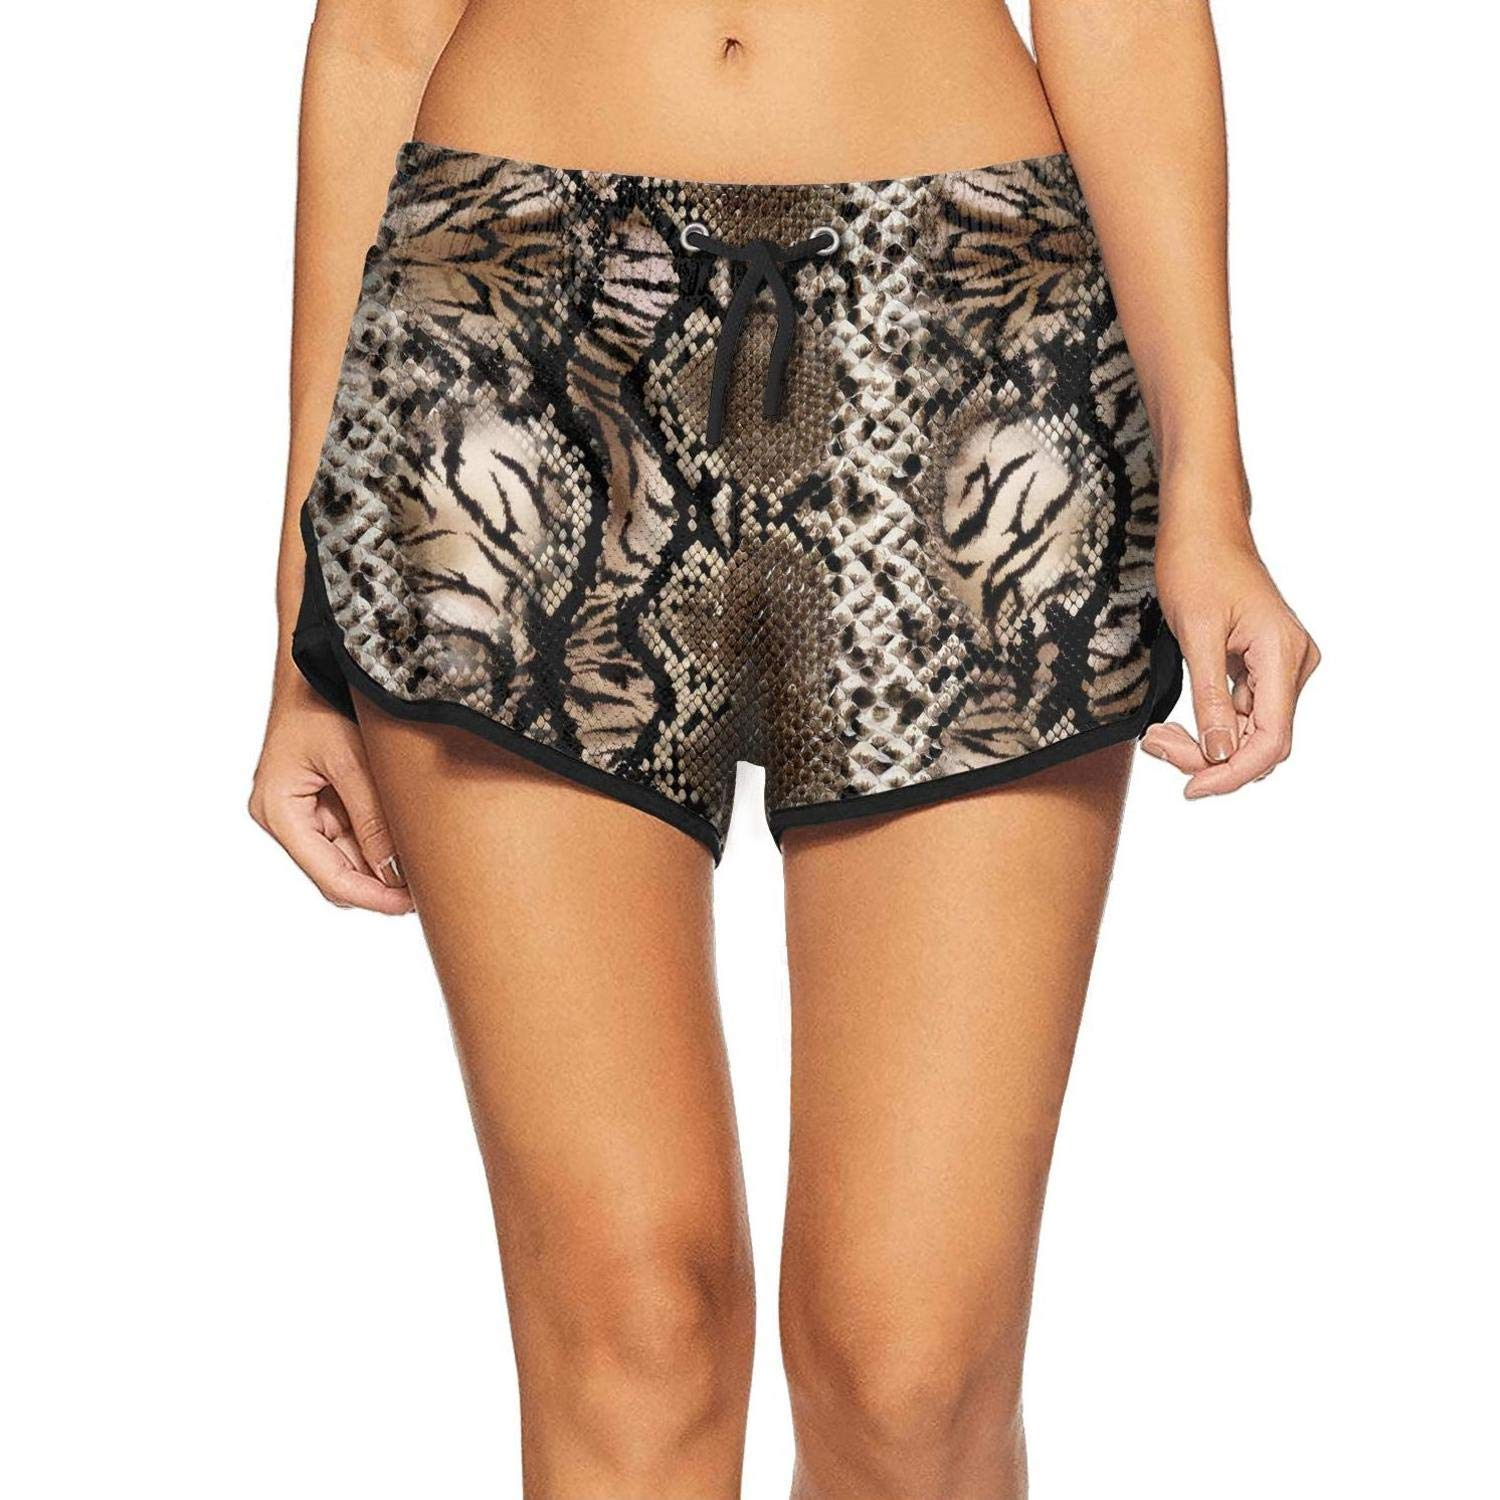 Snake Skin and Leopard Pattern Womens Shorts Durability Colorful